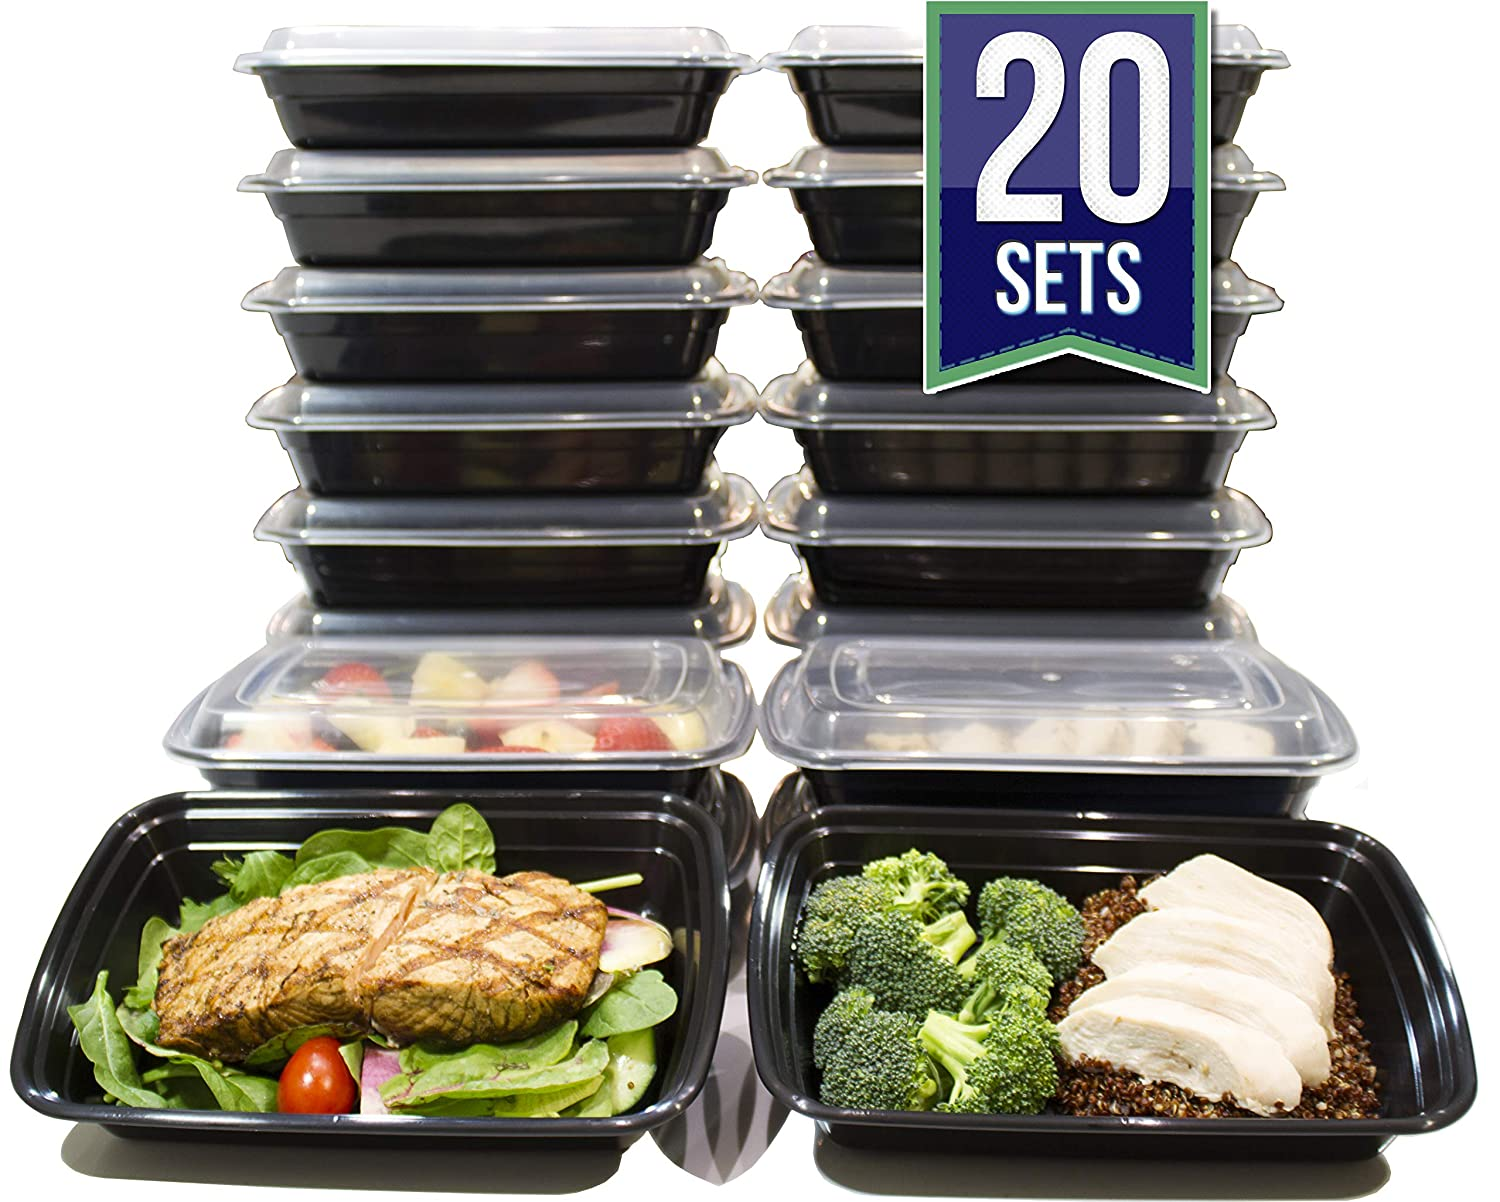 [20 Pack] 24 Oz. Meal Prep Containers BPA Free Plastic Reusable Food Storage Container Microwave & Dishwasher Safe w/Airtight Lid For Portion Control & Bento Box Lunch Box Misc Home B01BY9YV46